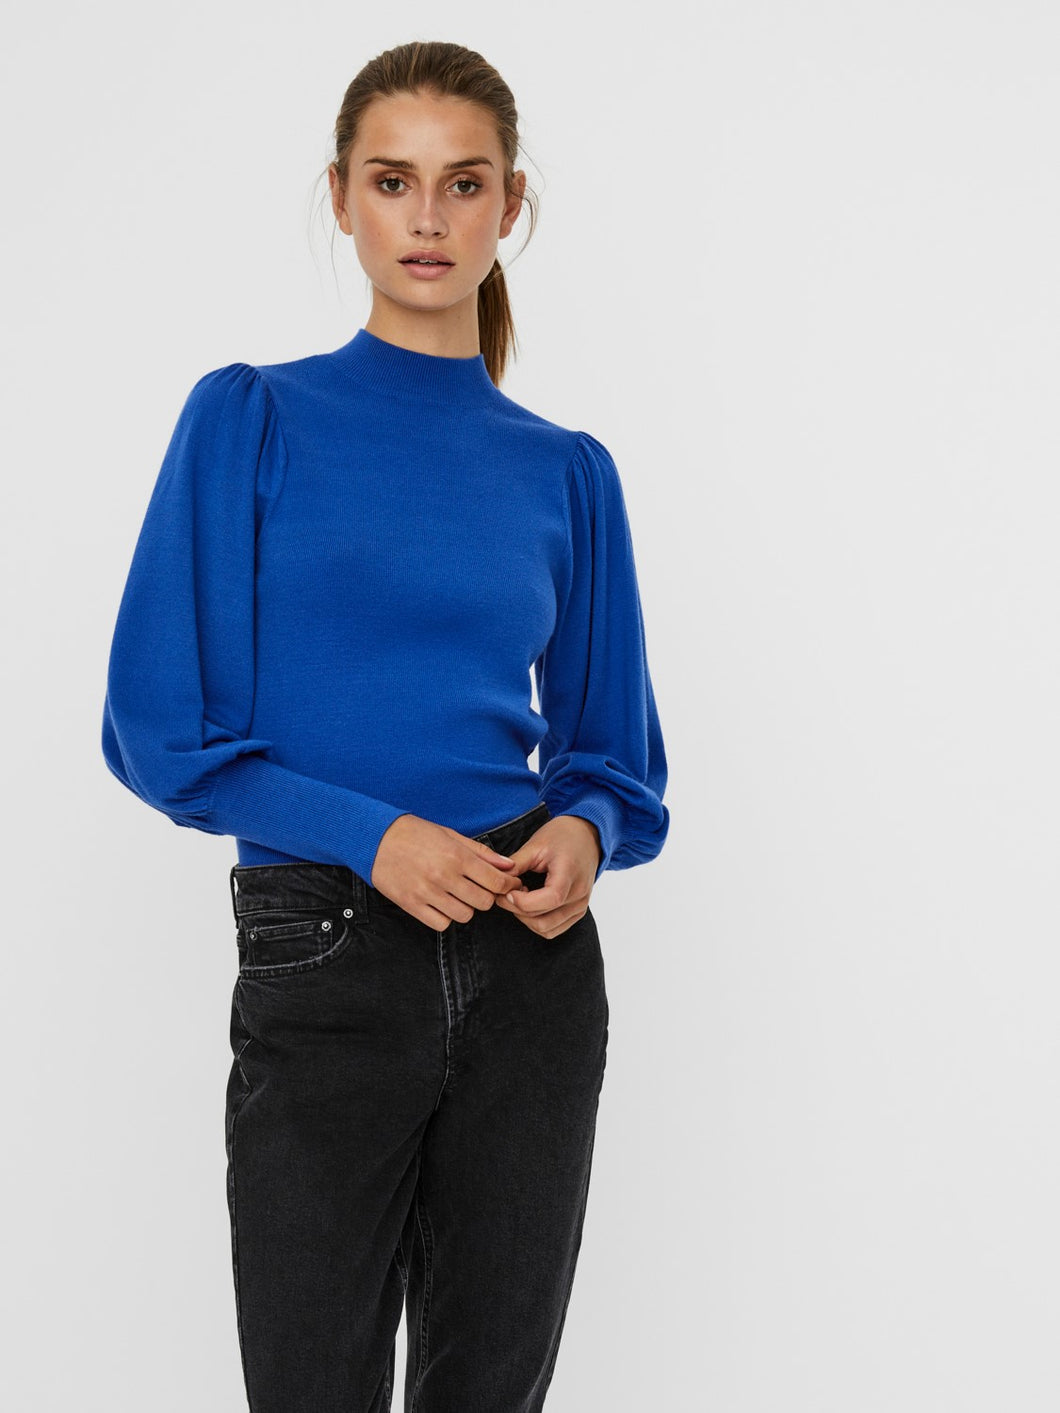 Karis Puff Sleeve Jumper - Dazzling Blue